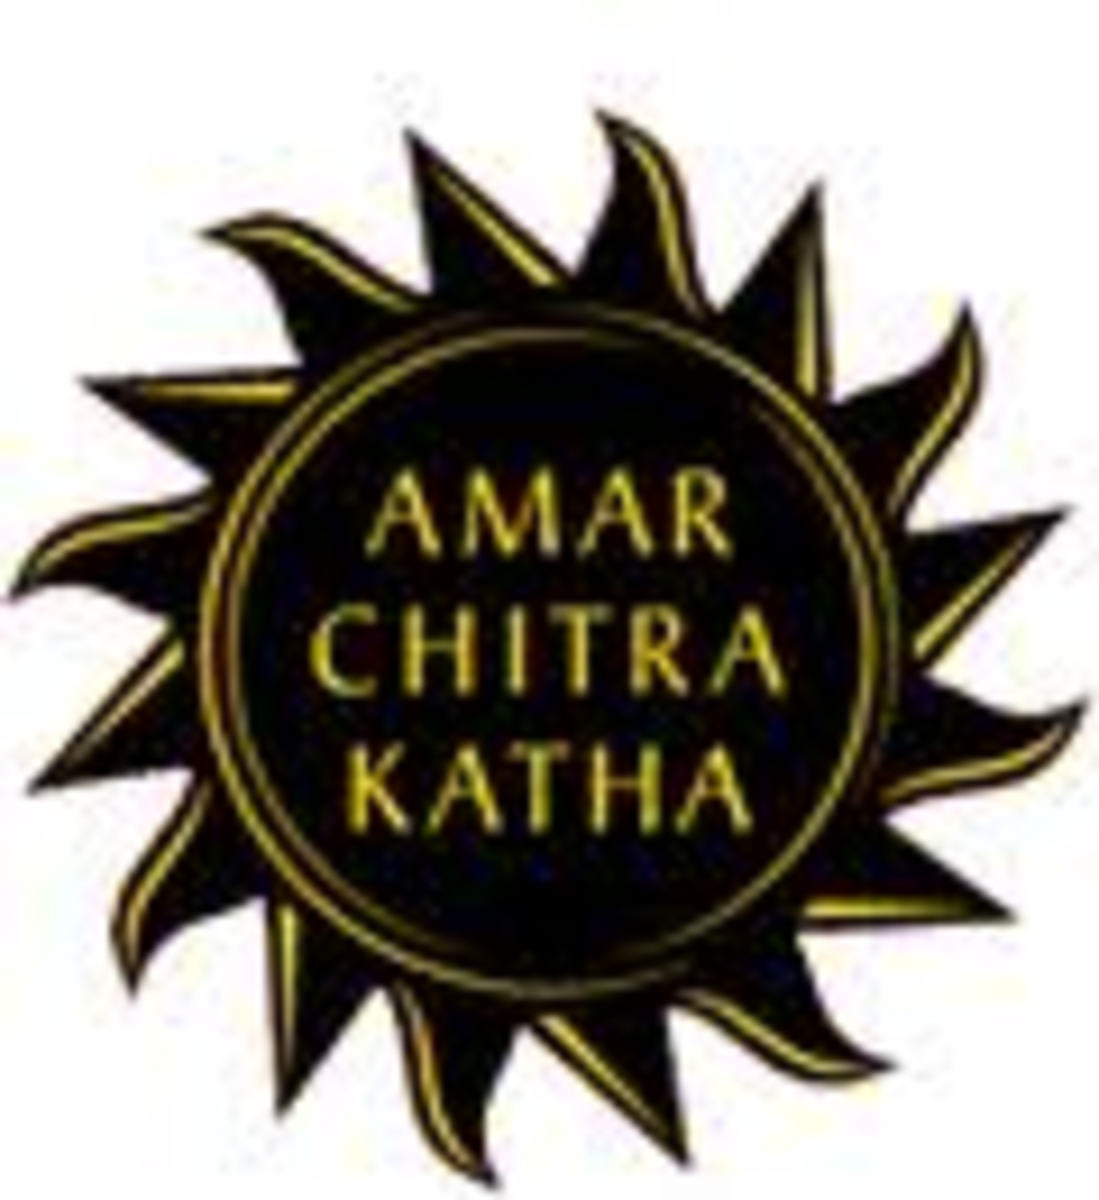 indias-comics-based-on-mythology-and-history-in-english-language-amar-chitra-katha-meaning-immortal-picture-stories